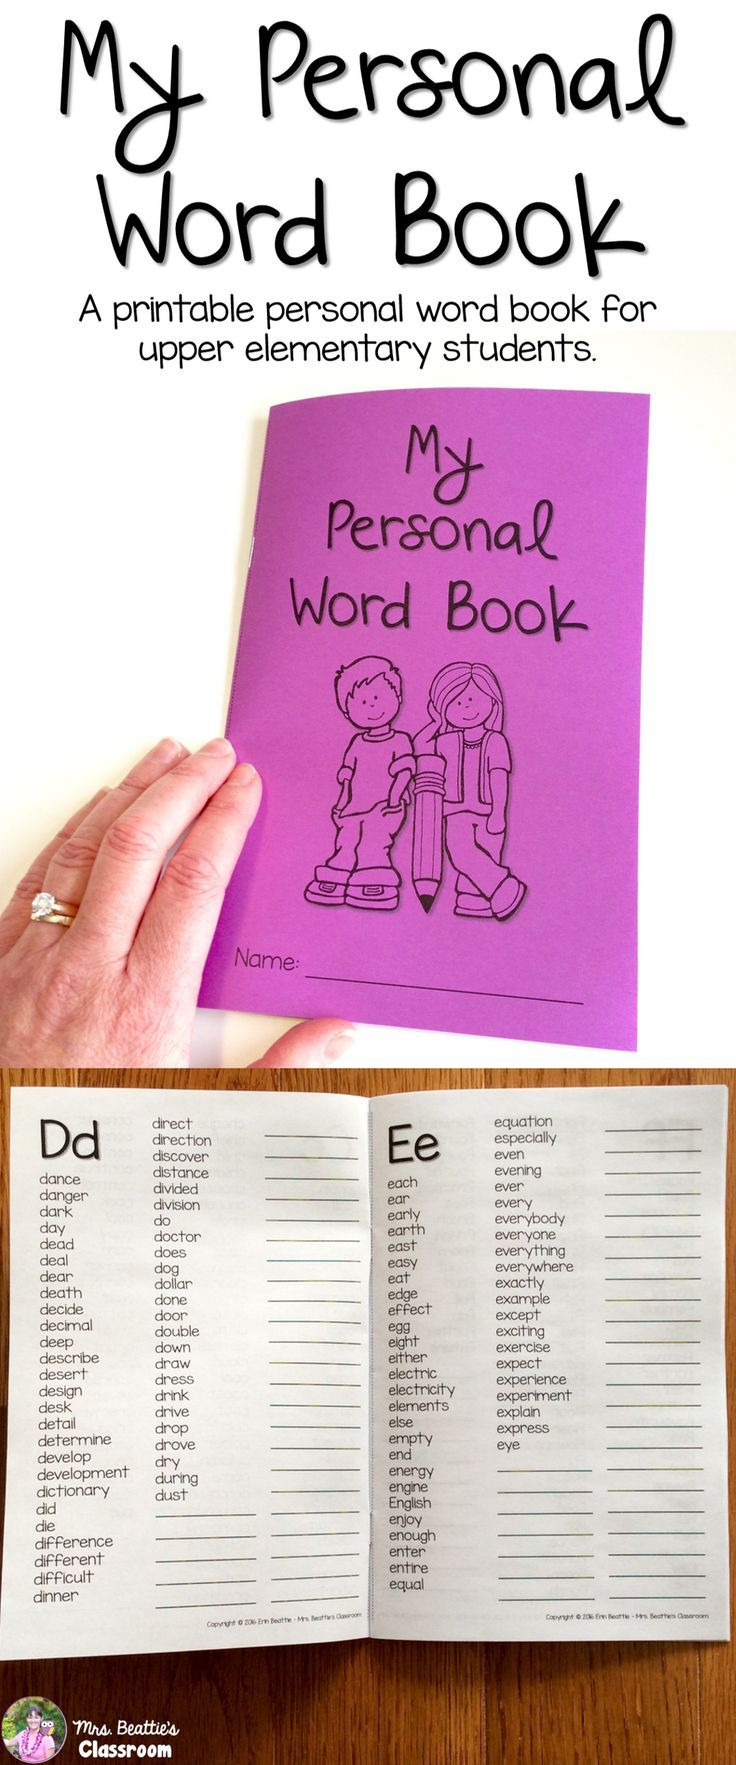 My Personal Word Book - A Personal Word Book For Upper Elementary Students from Mrs. Beattie's Classroom. The Personal Word Book contains over 1000 of the most commonly used words in the English language, as well as some extras such as number words, contractions & plural rules!